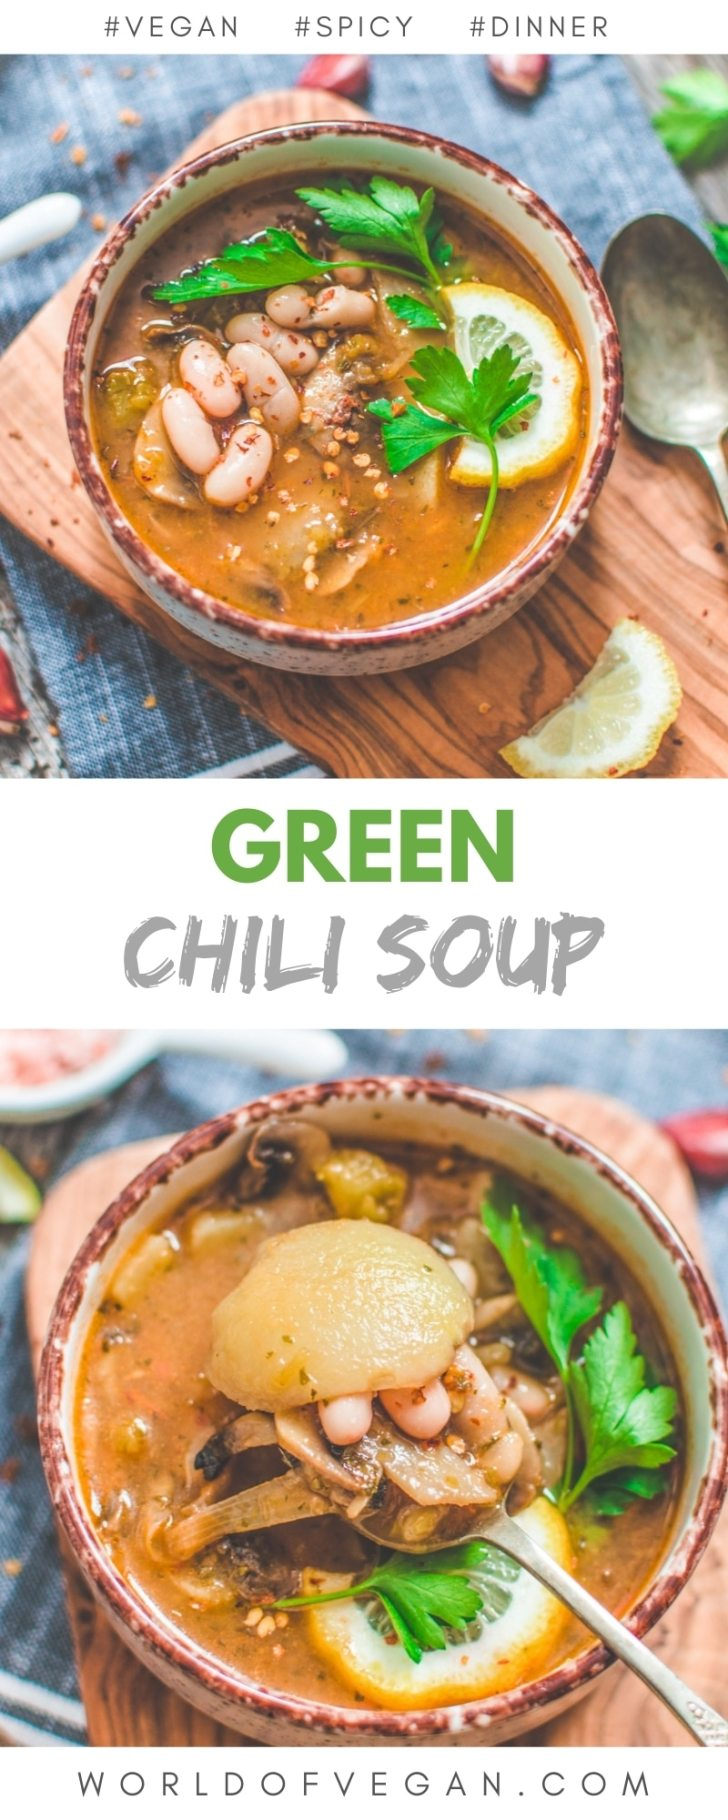 Hearty Vegan Green Chili Soup with Cannellini Beans